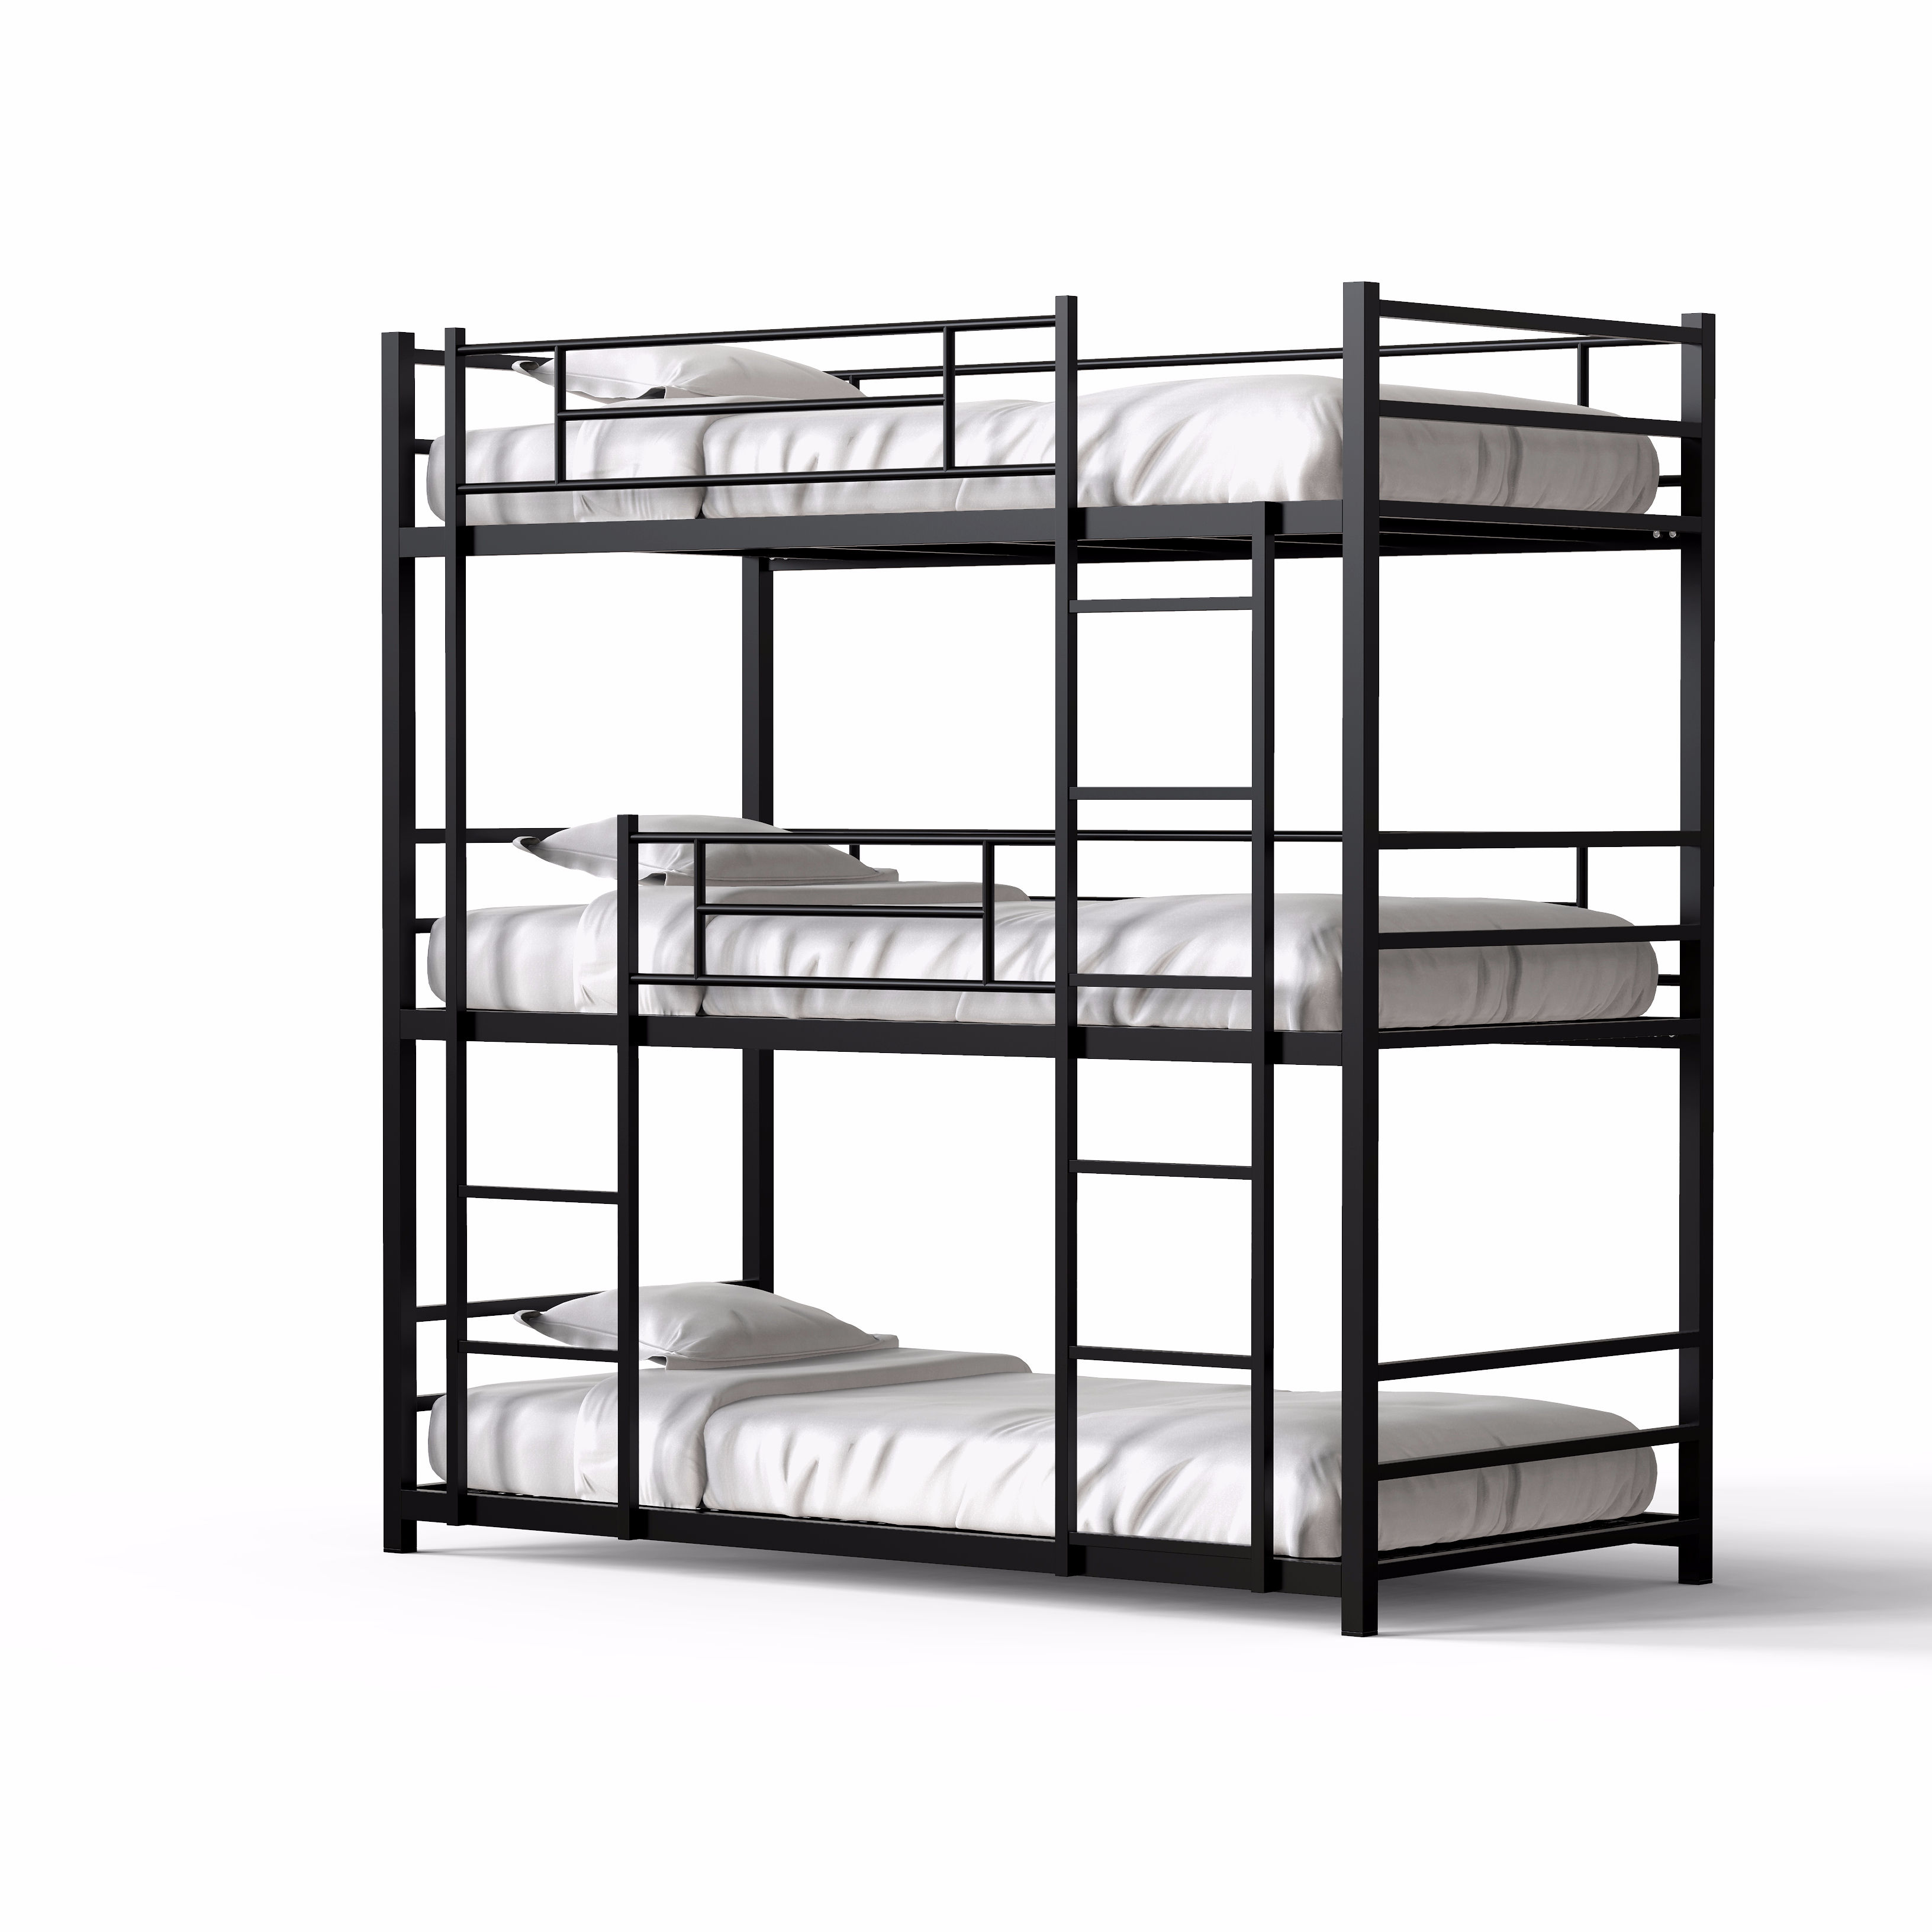 2019 Home dormitory steel locker hostel beds 3 layer metal bunk bed with wire mesh bedroom furniture